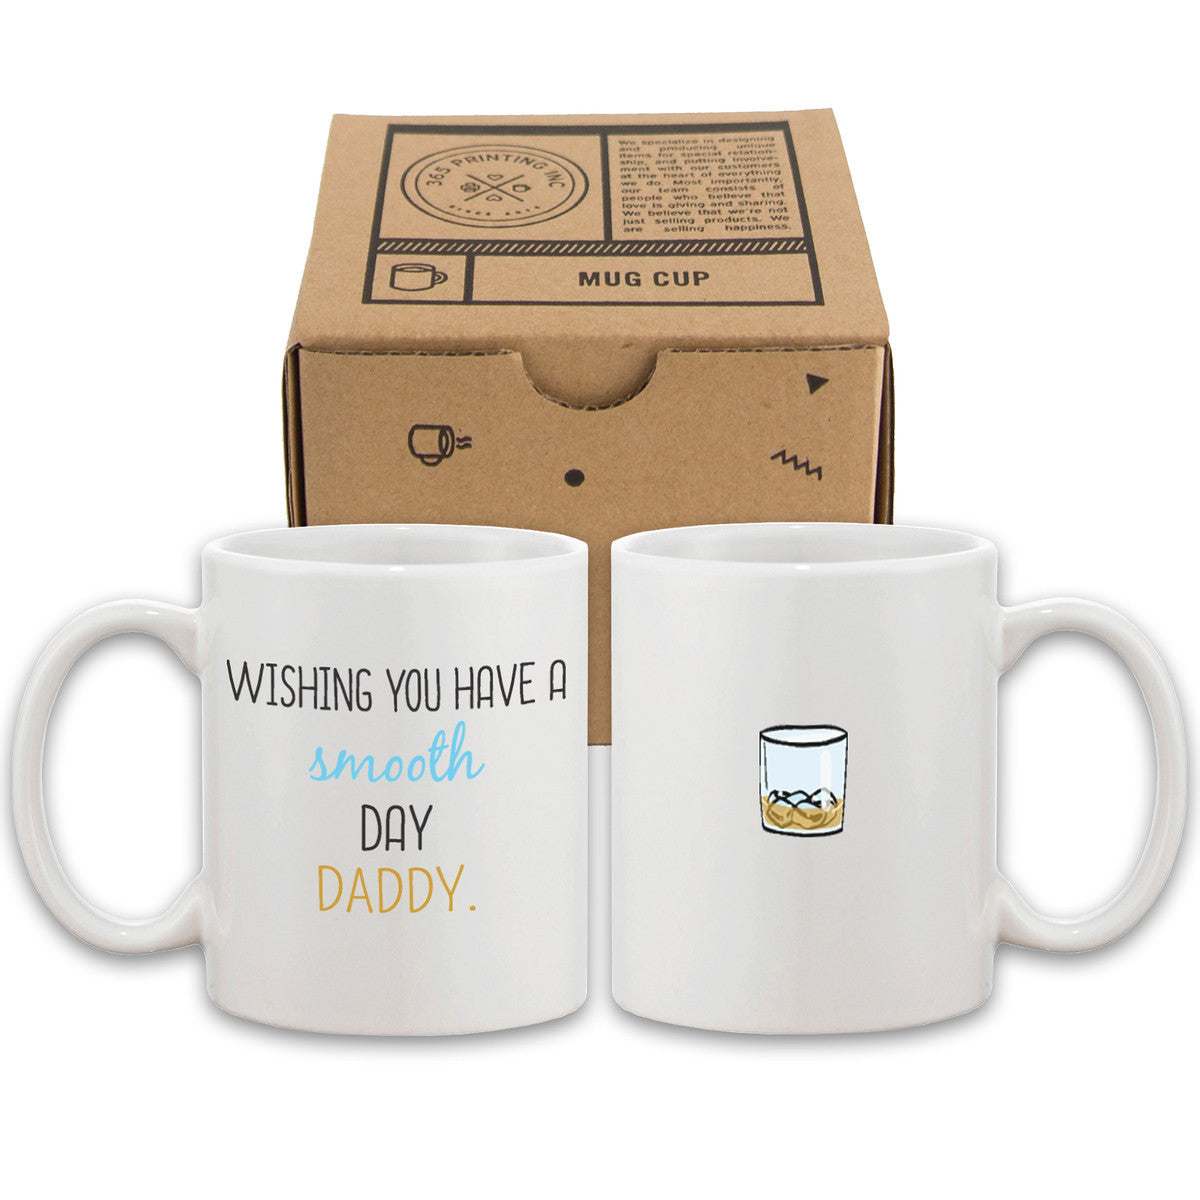 Wishing You Have A Smooth Day Daddy Cute Mug Funny Father S Day Gifts 365 In Love Matching Gifts Ideas